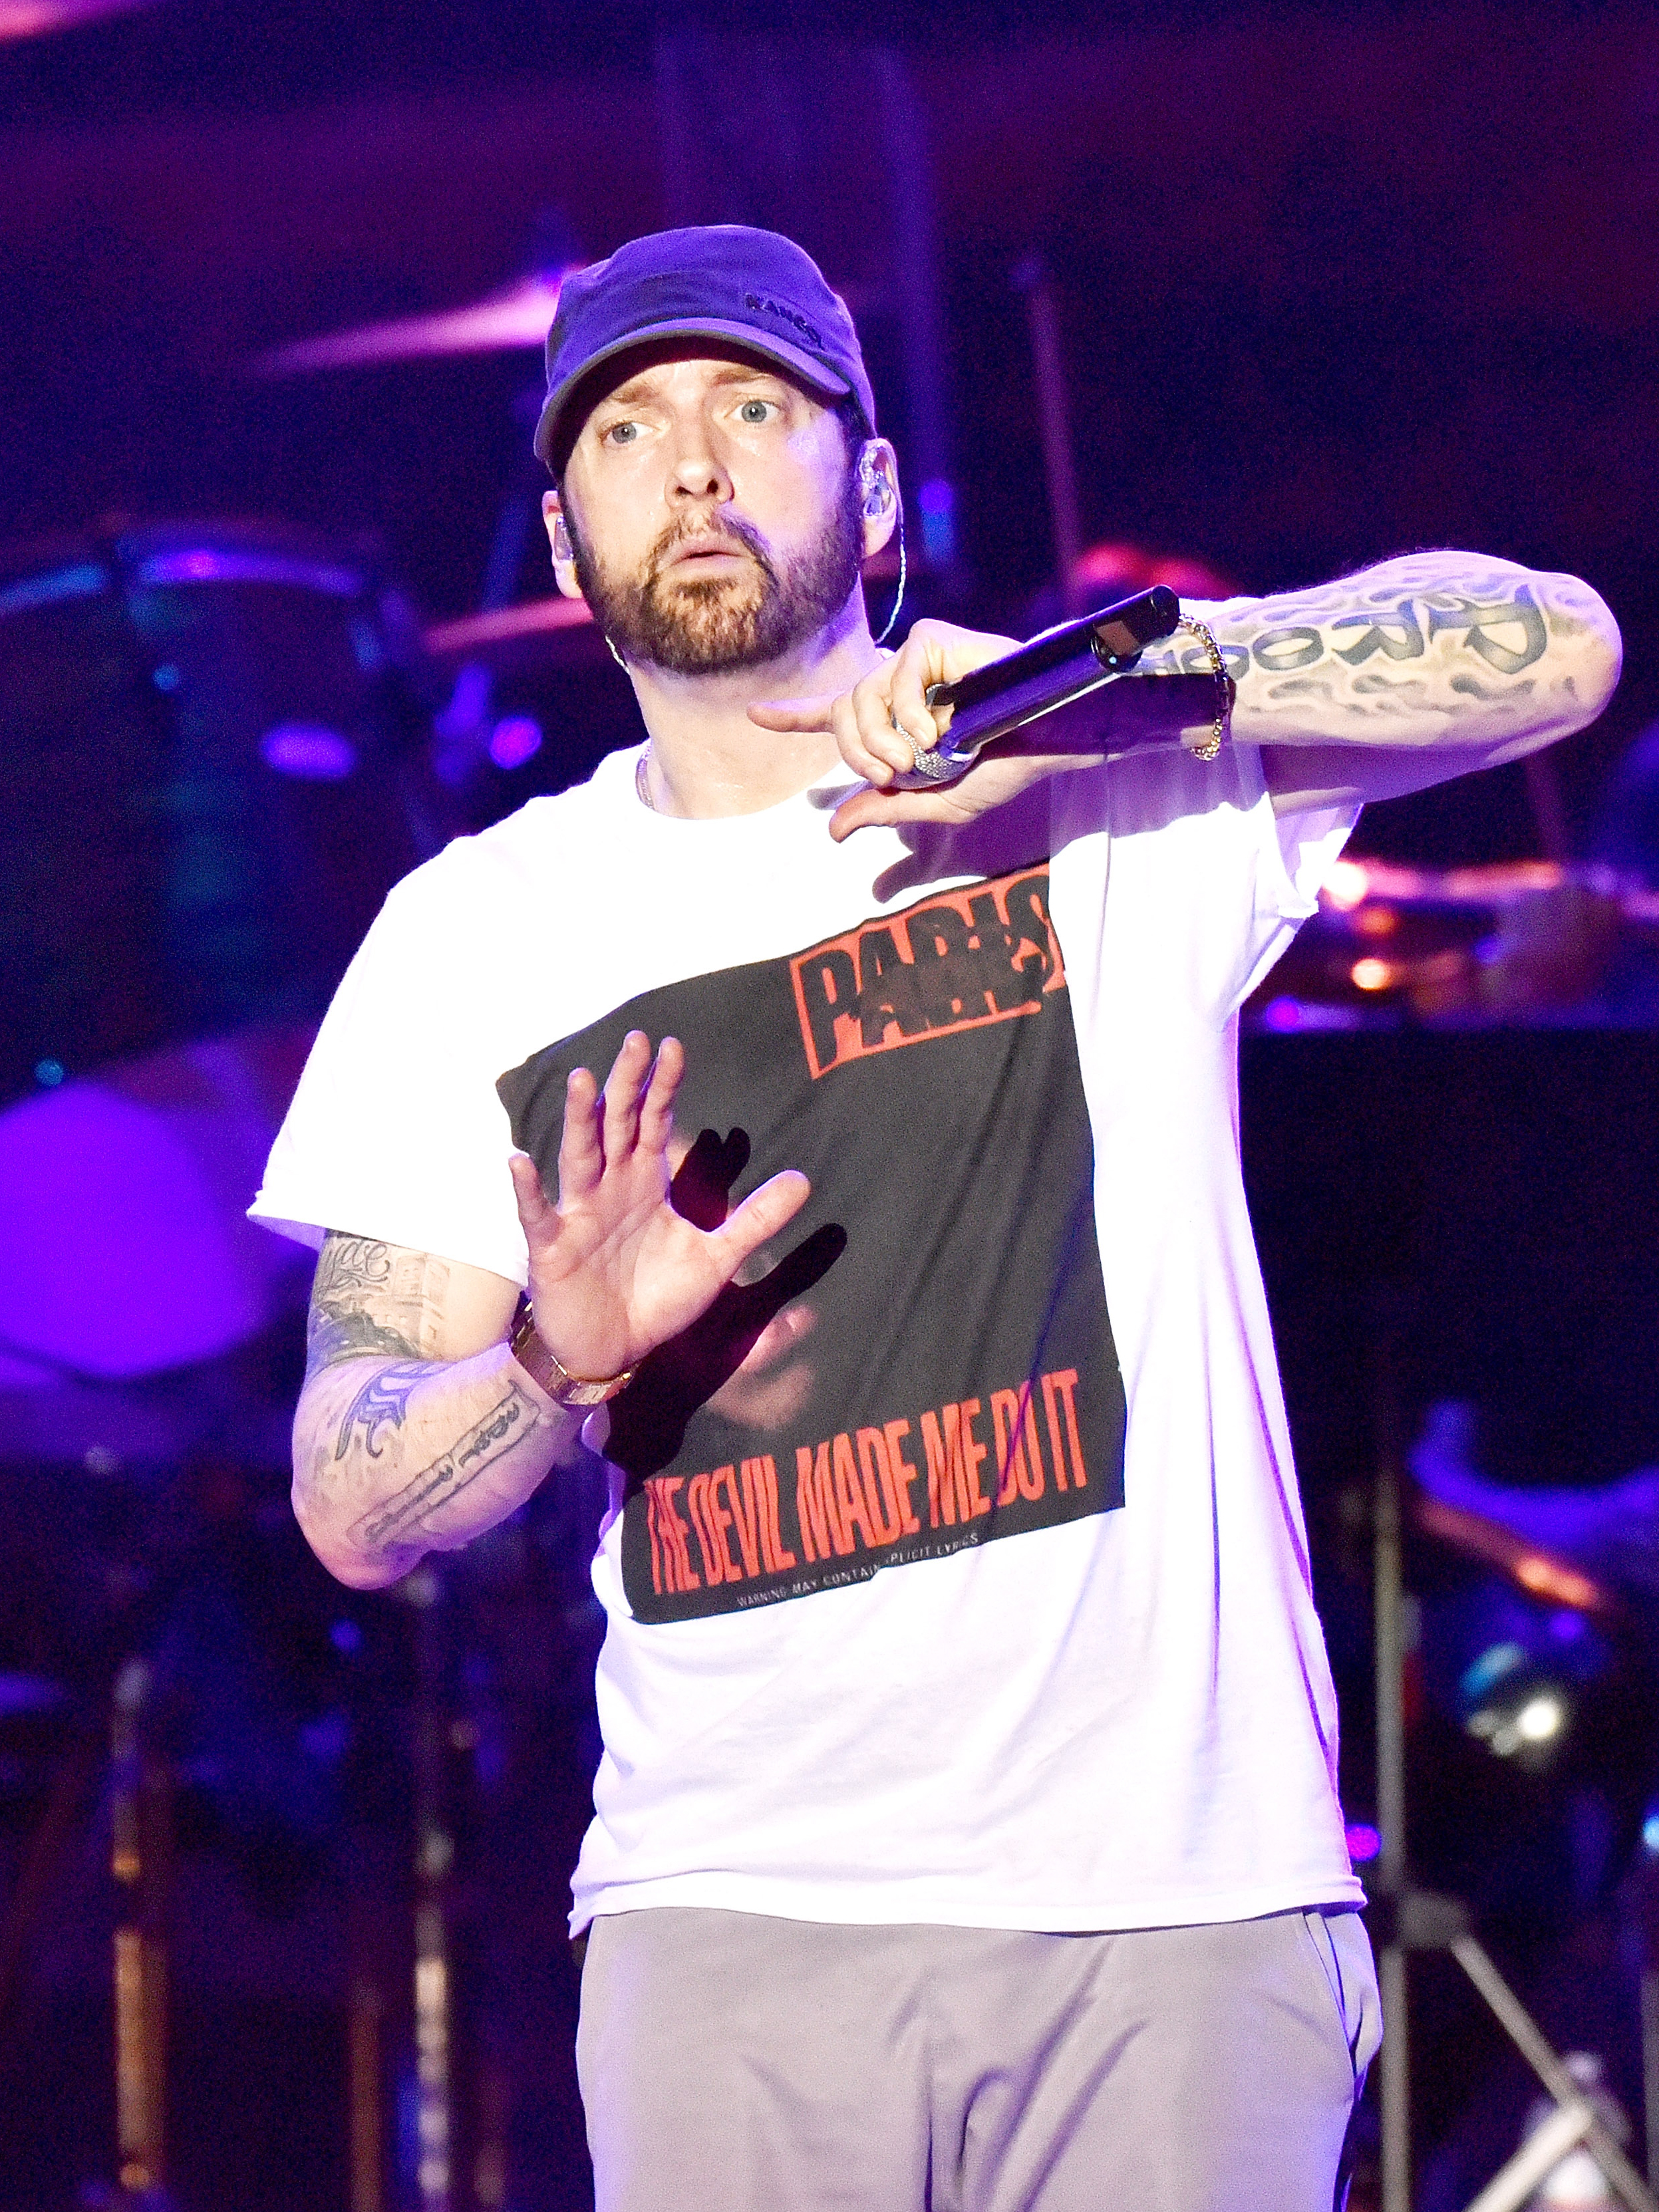 Eminem's estranged dad Marshall Bruce Mathers dead aged 67